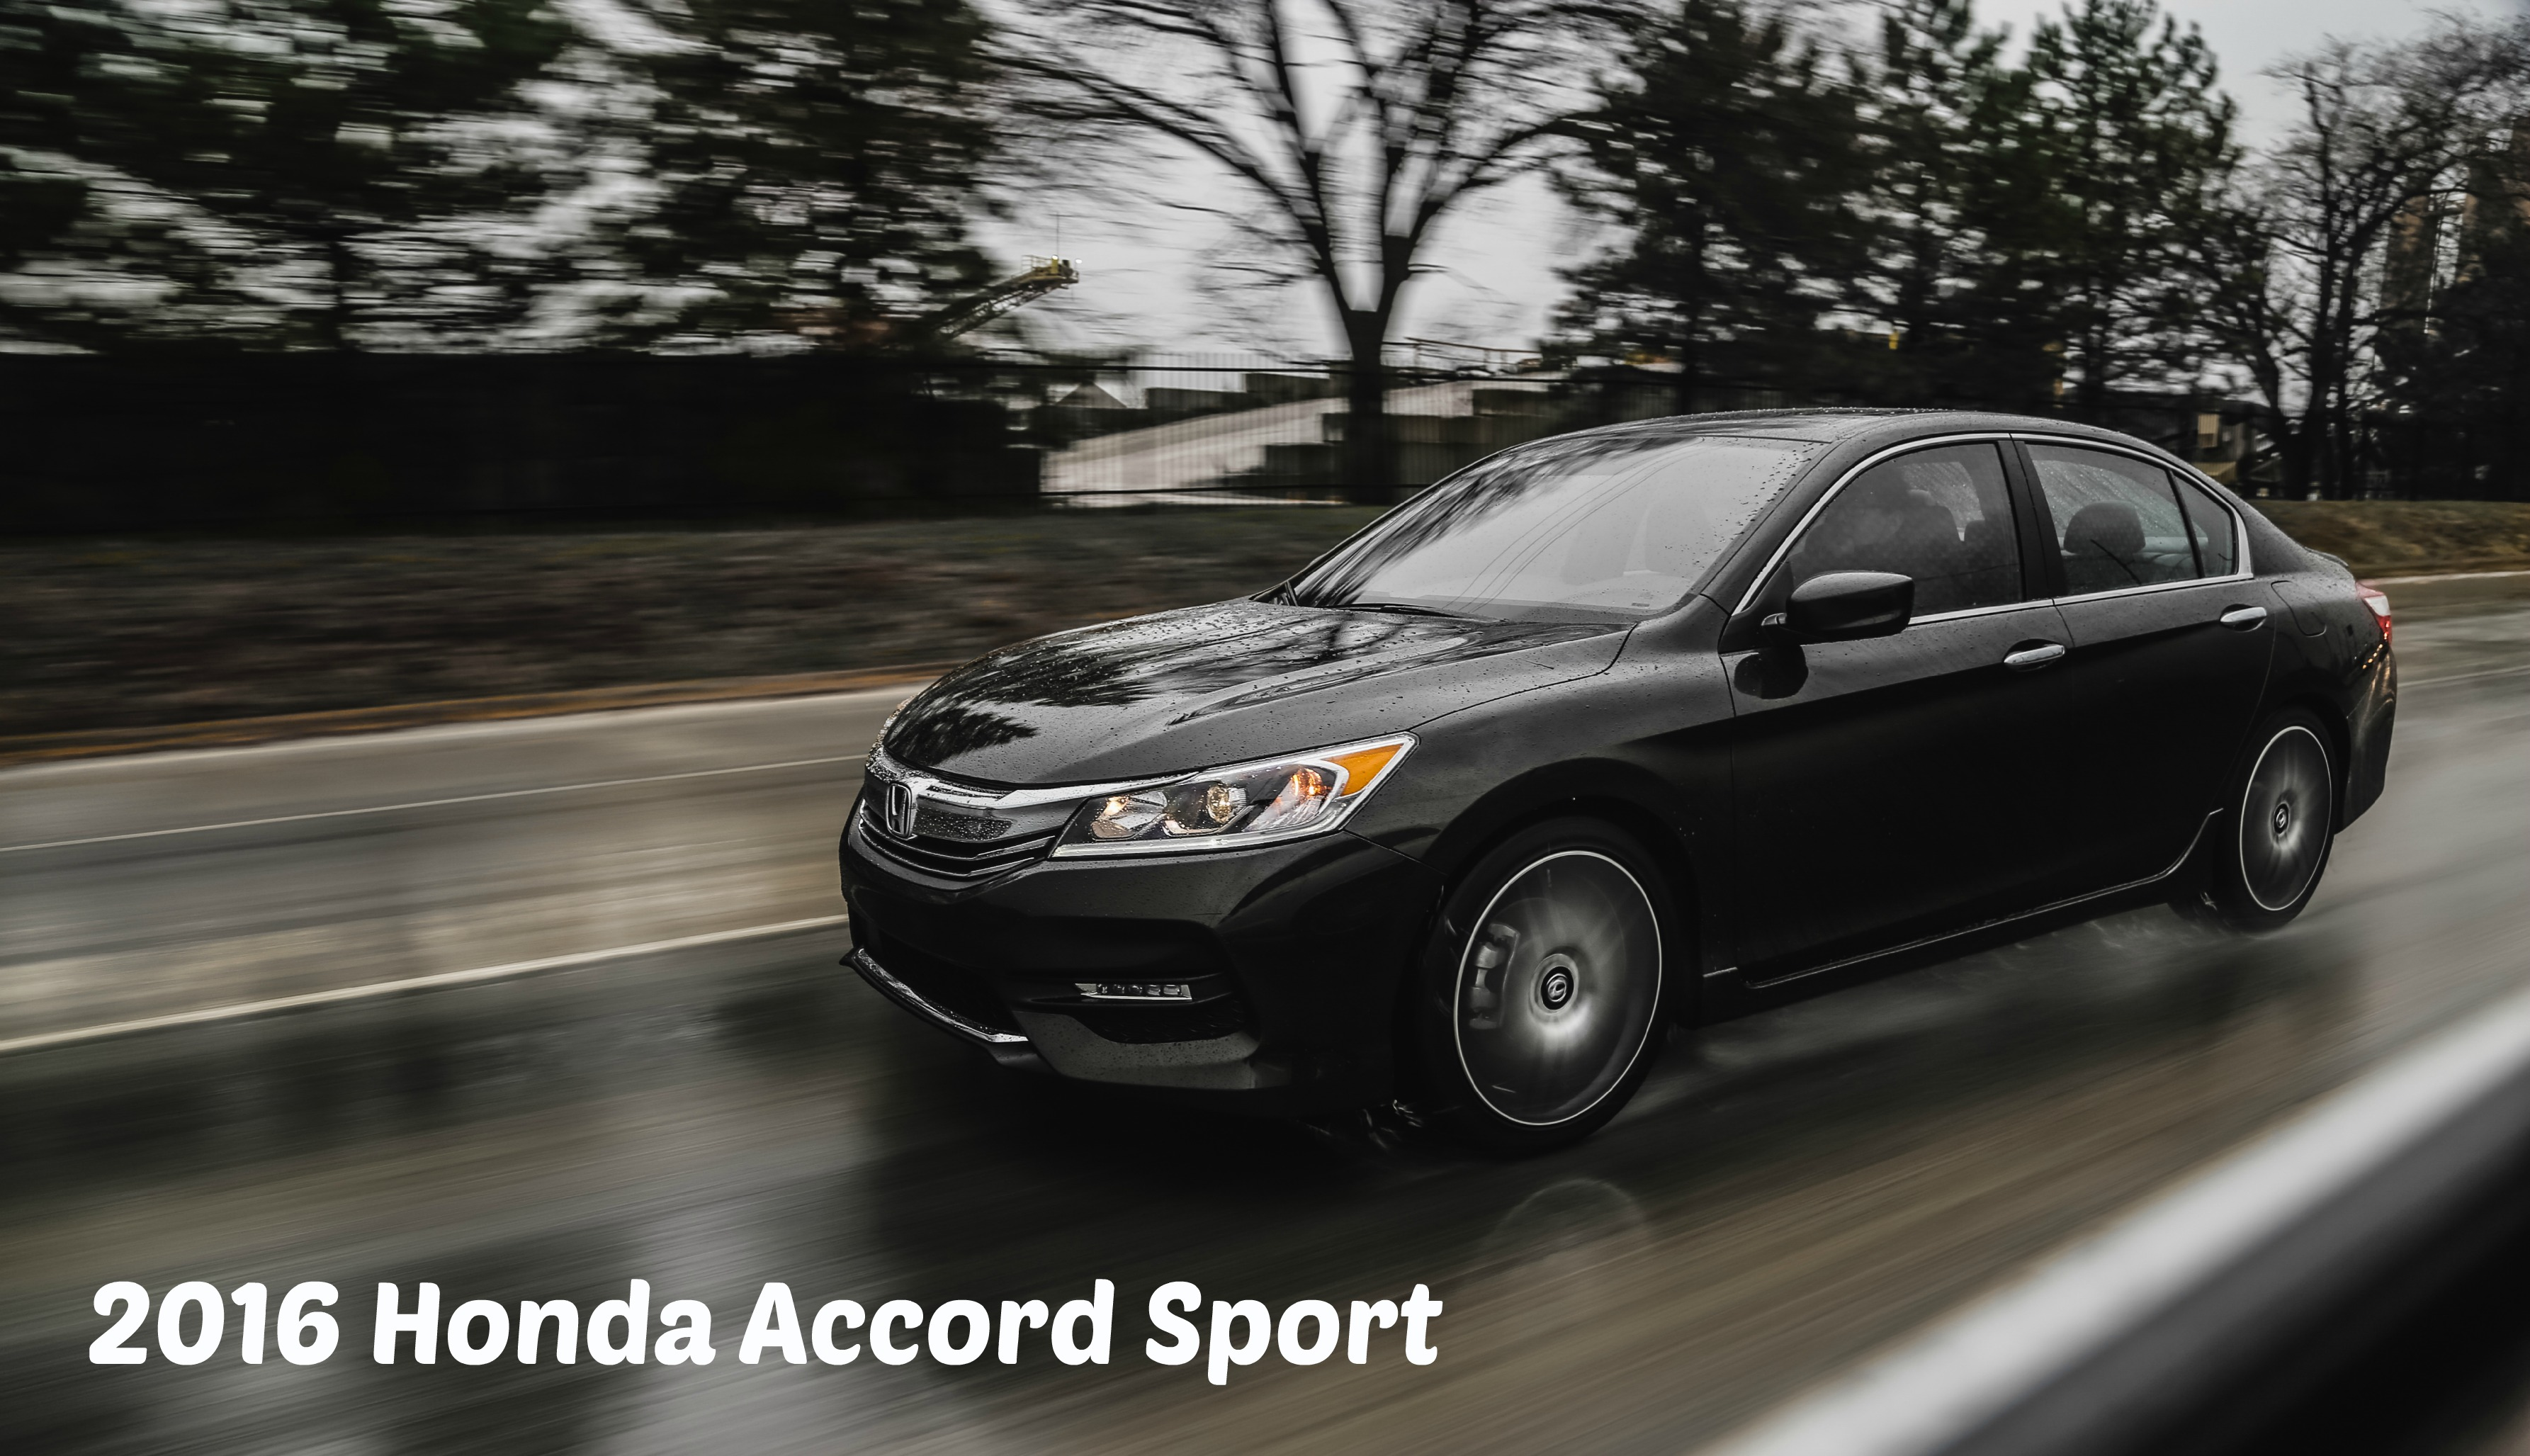 2016 honda accord sport review cover life is poppin 39 for Honda accord sport price